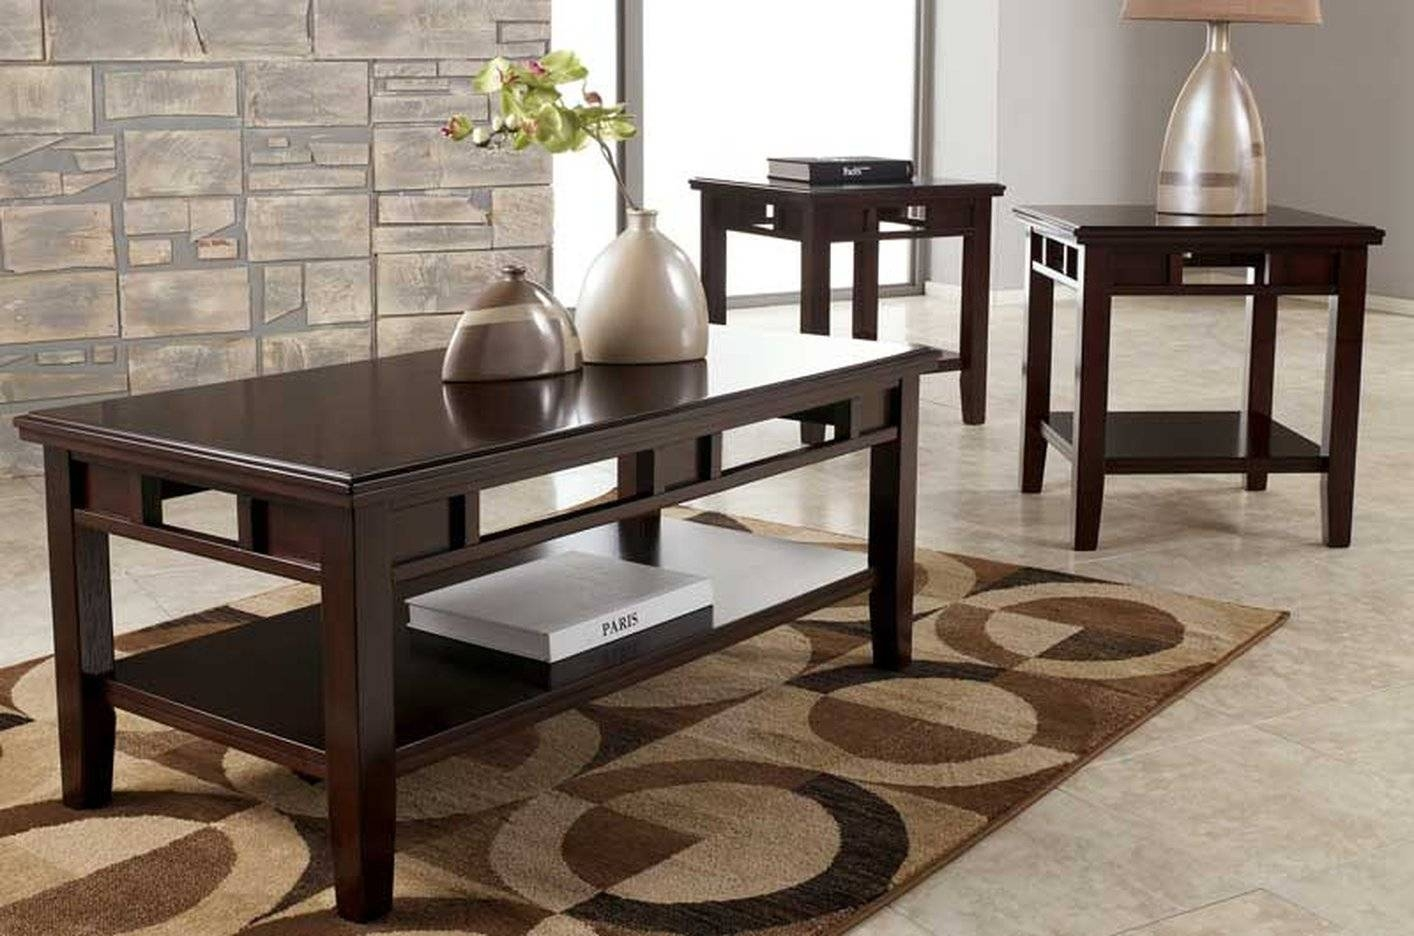 Unique Coffee Table And End Table Sets | Coffee Tables Decoration in Coffee Table With Matching End Tables (Image 28 of 30)